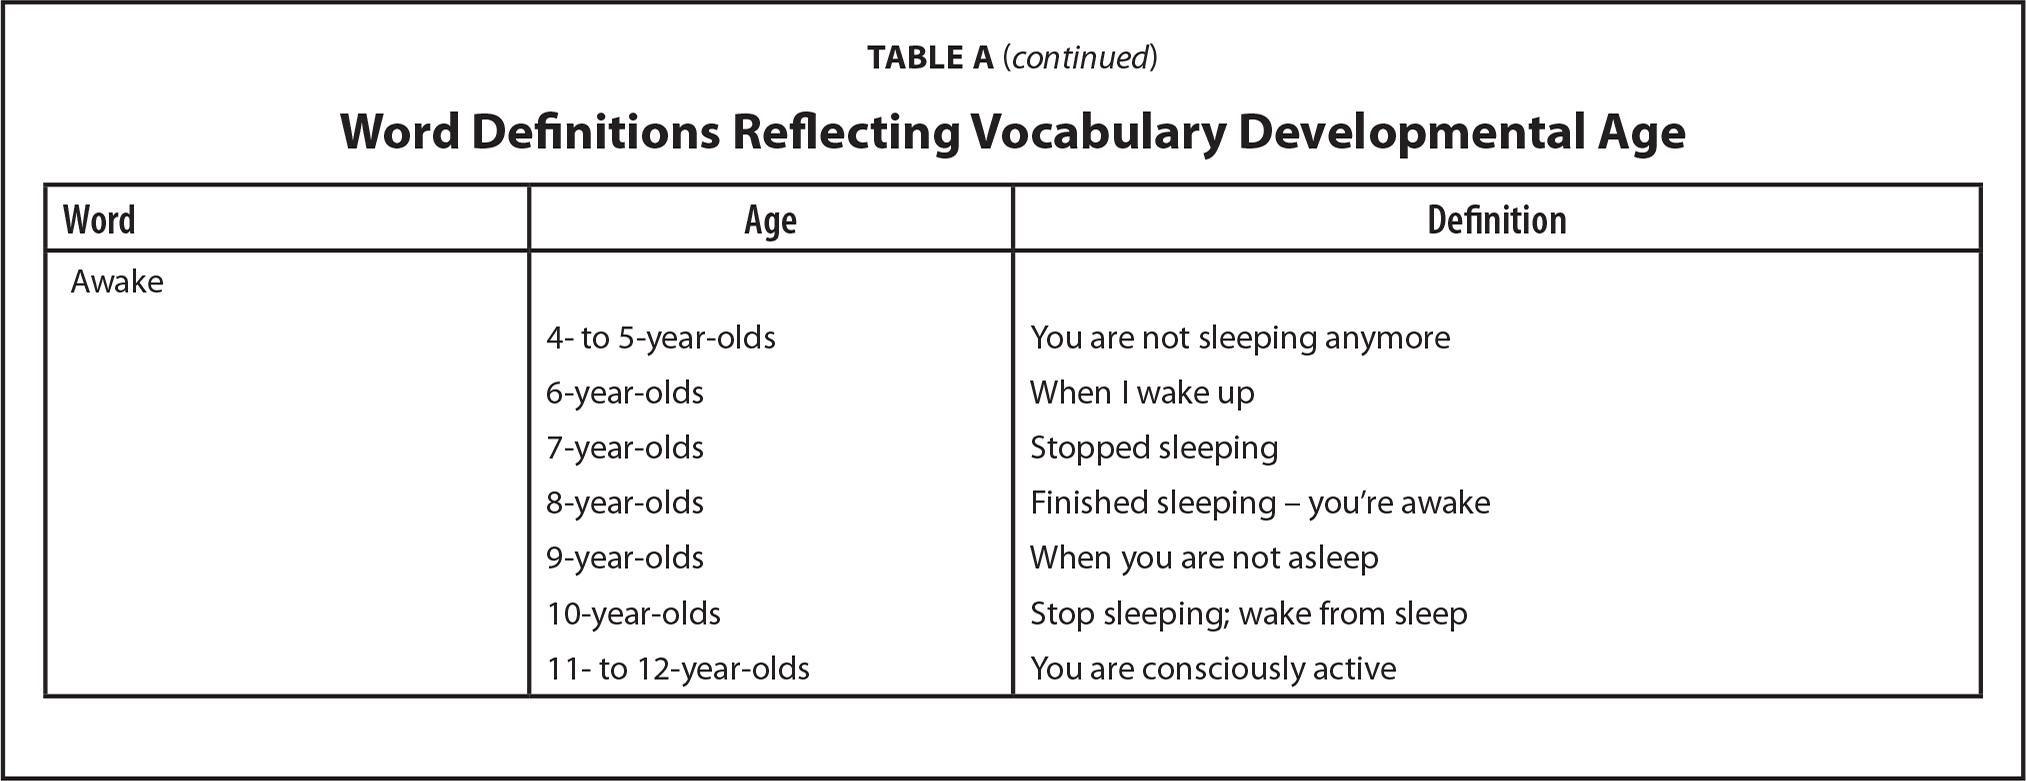 Word Definitions Reflecting Vocabulary Developmental Age